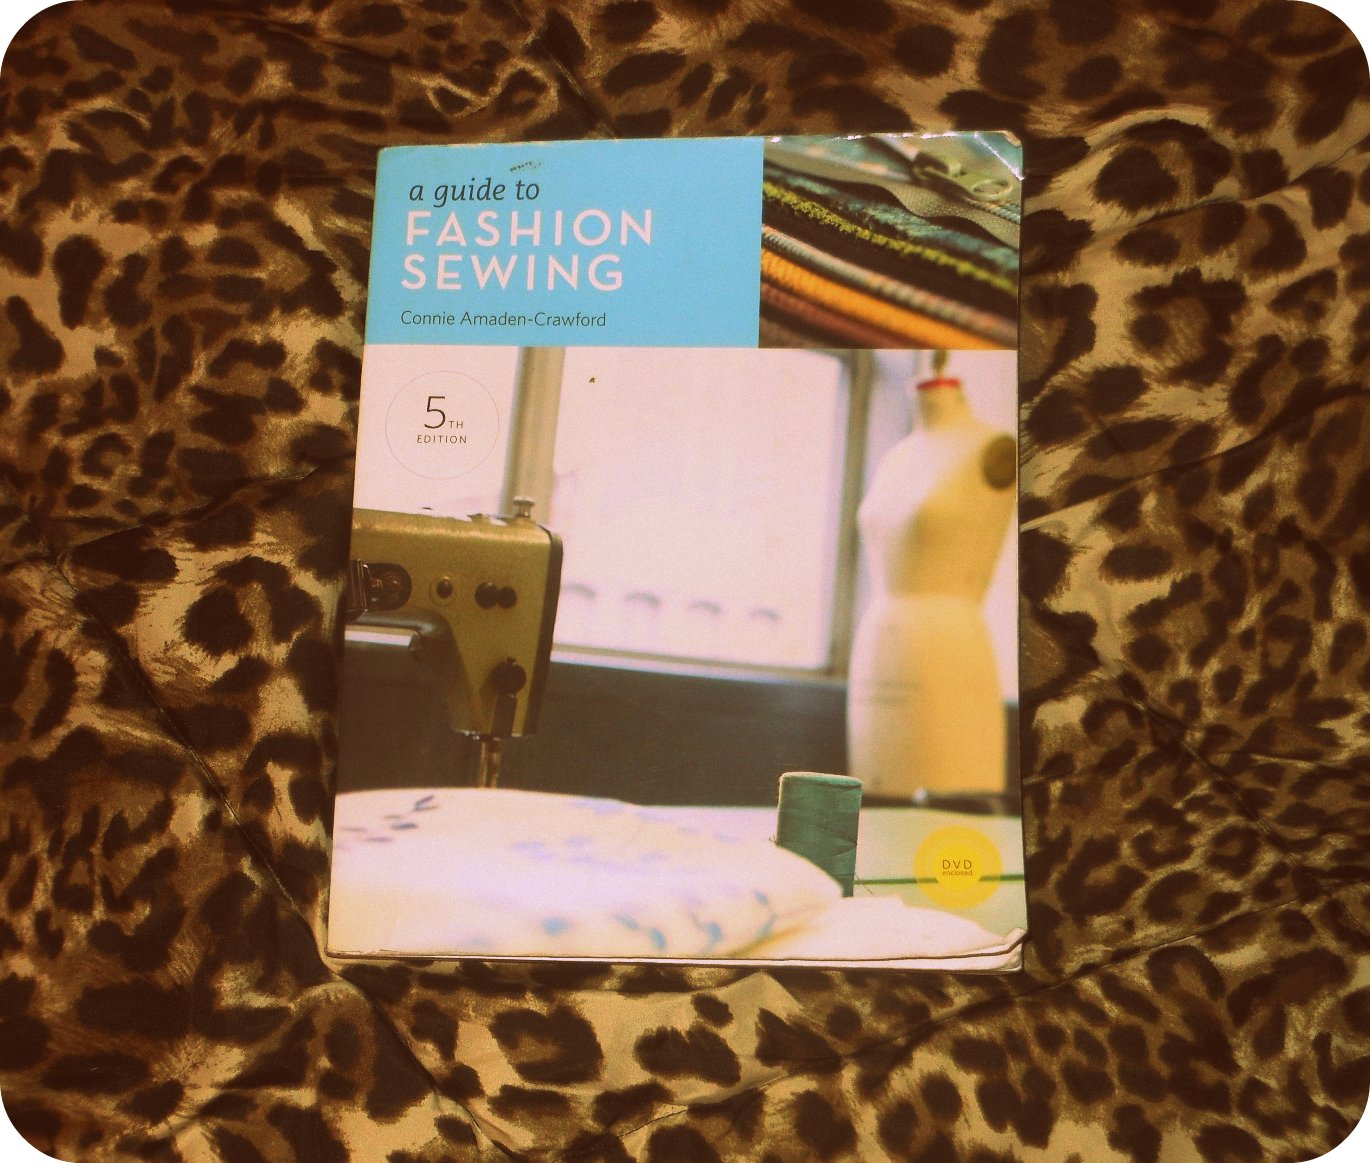 A guide to fashion sewing pdf 45